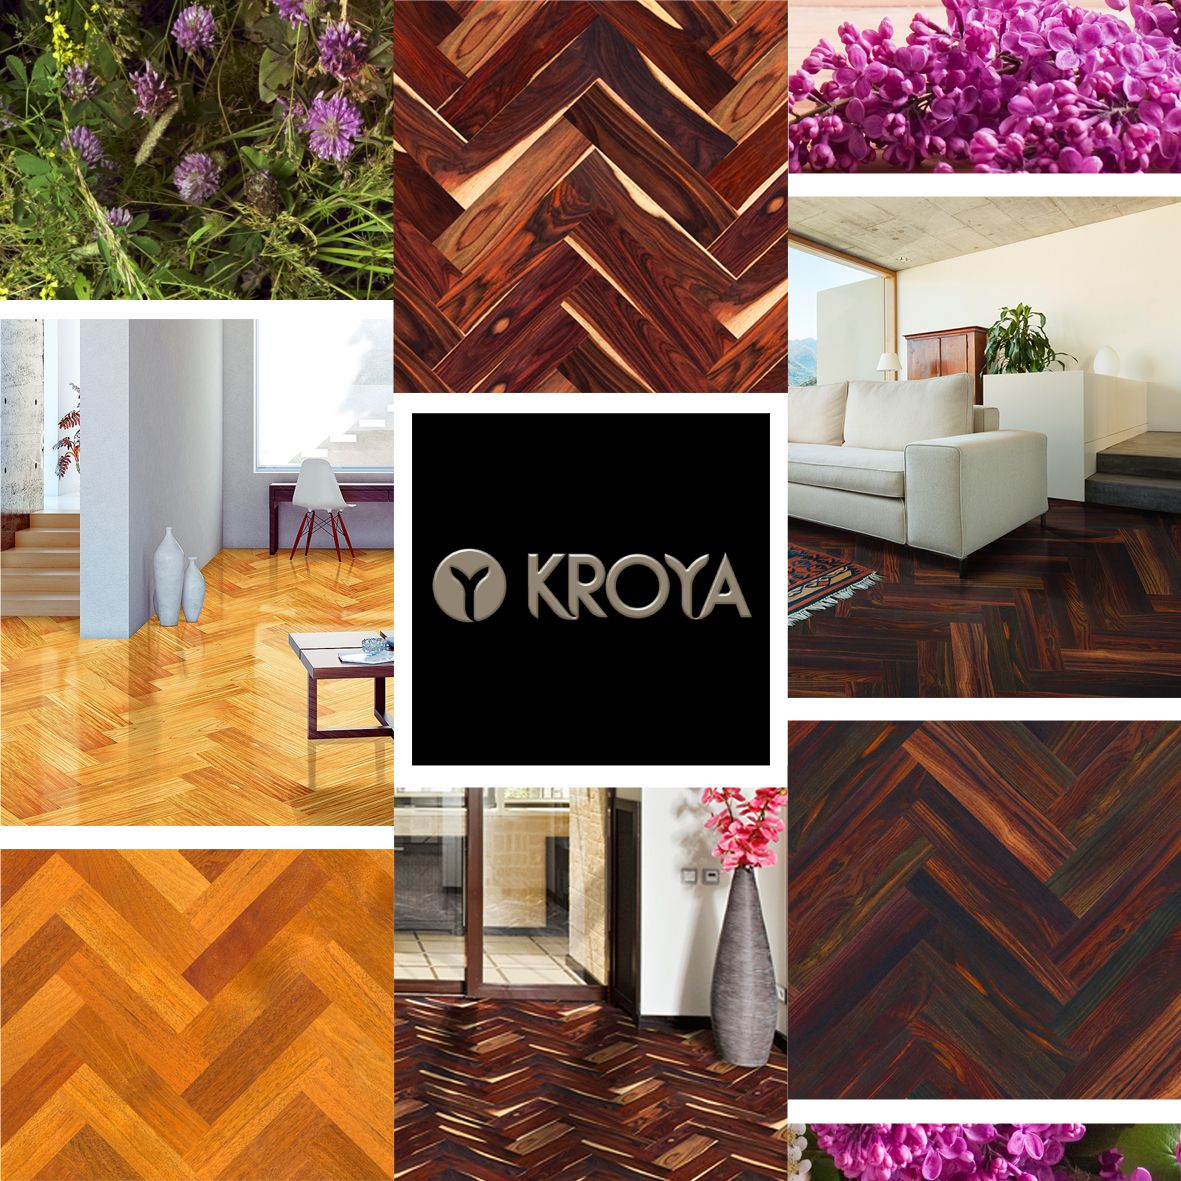 Here's a recap on KROYA Herringbone Collections for your